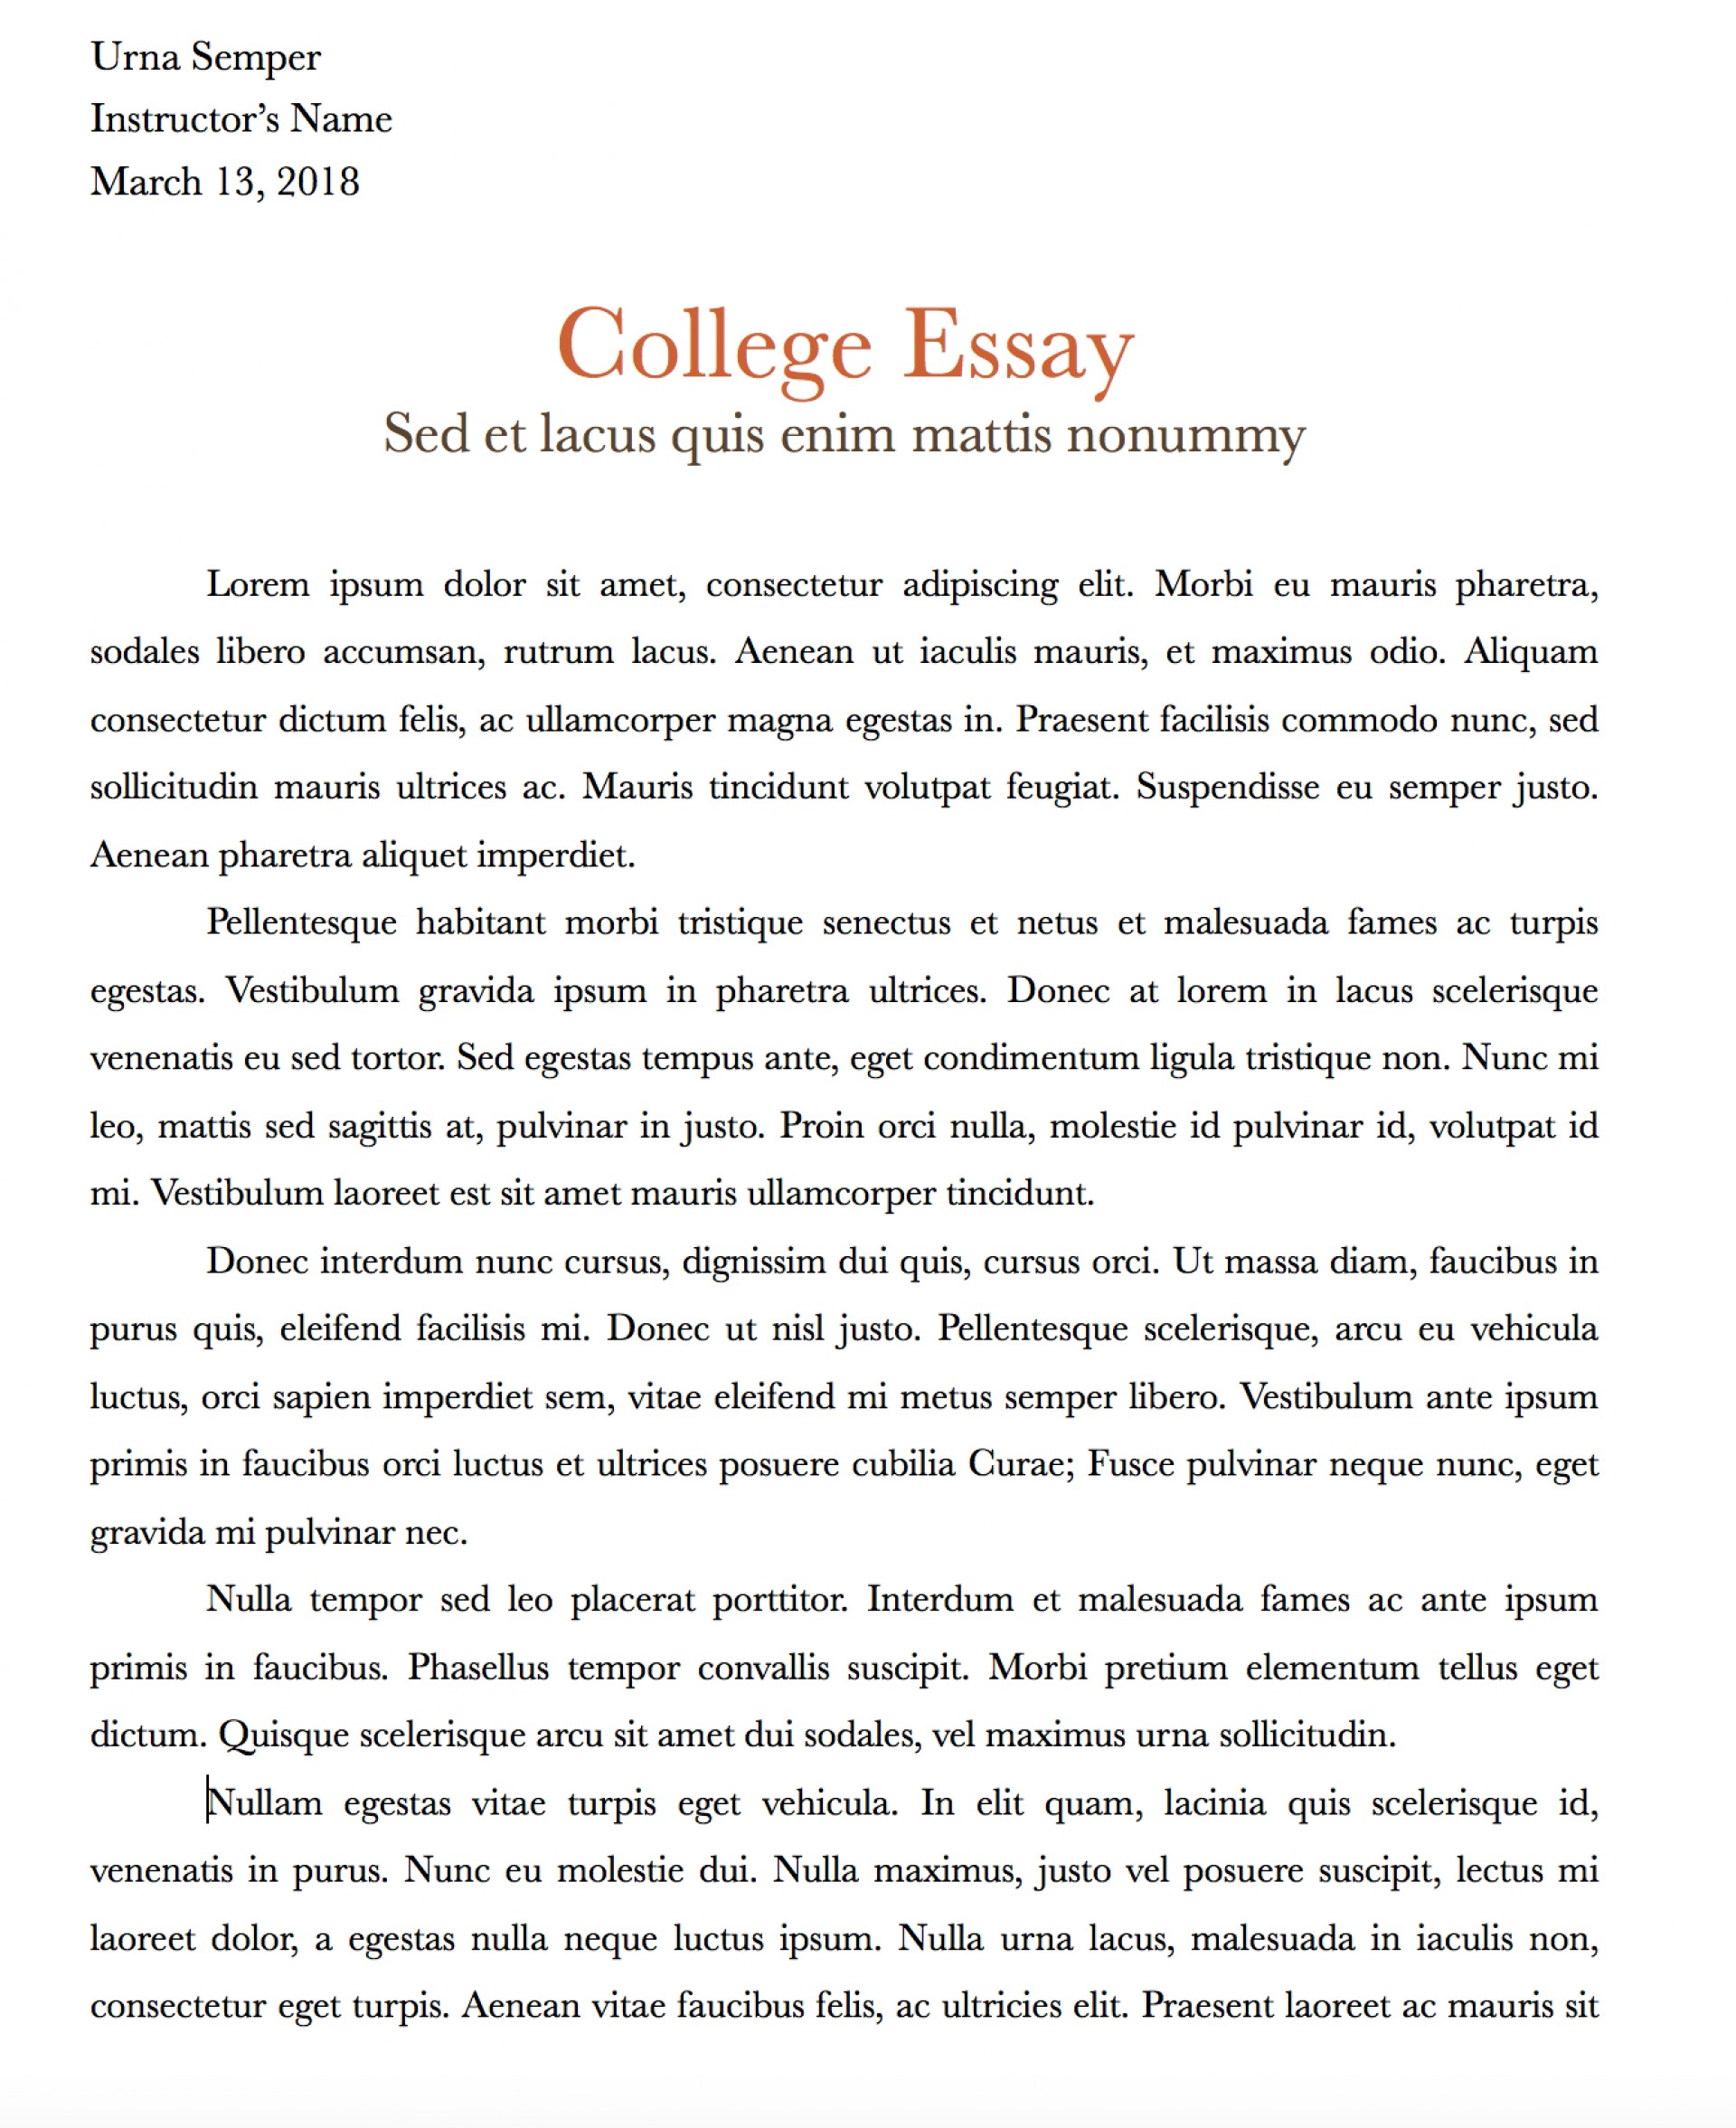 001 How An Essay Should Look Ctwrvkoshcimzkxyhyl8 College With Paragraphs Unique What A Persuasive Like Does Introduction In Argumentative 1920